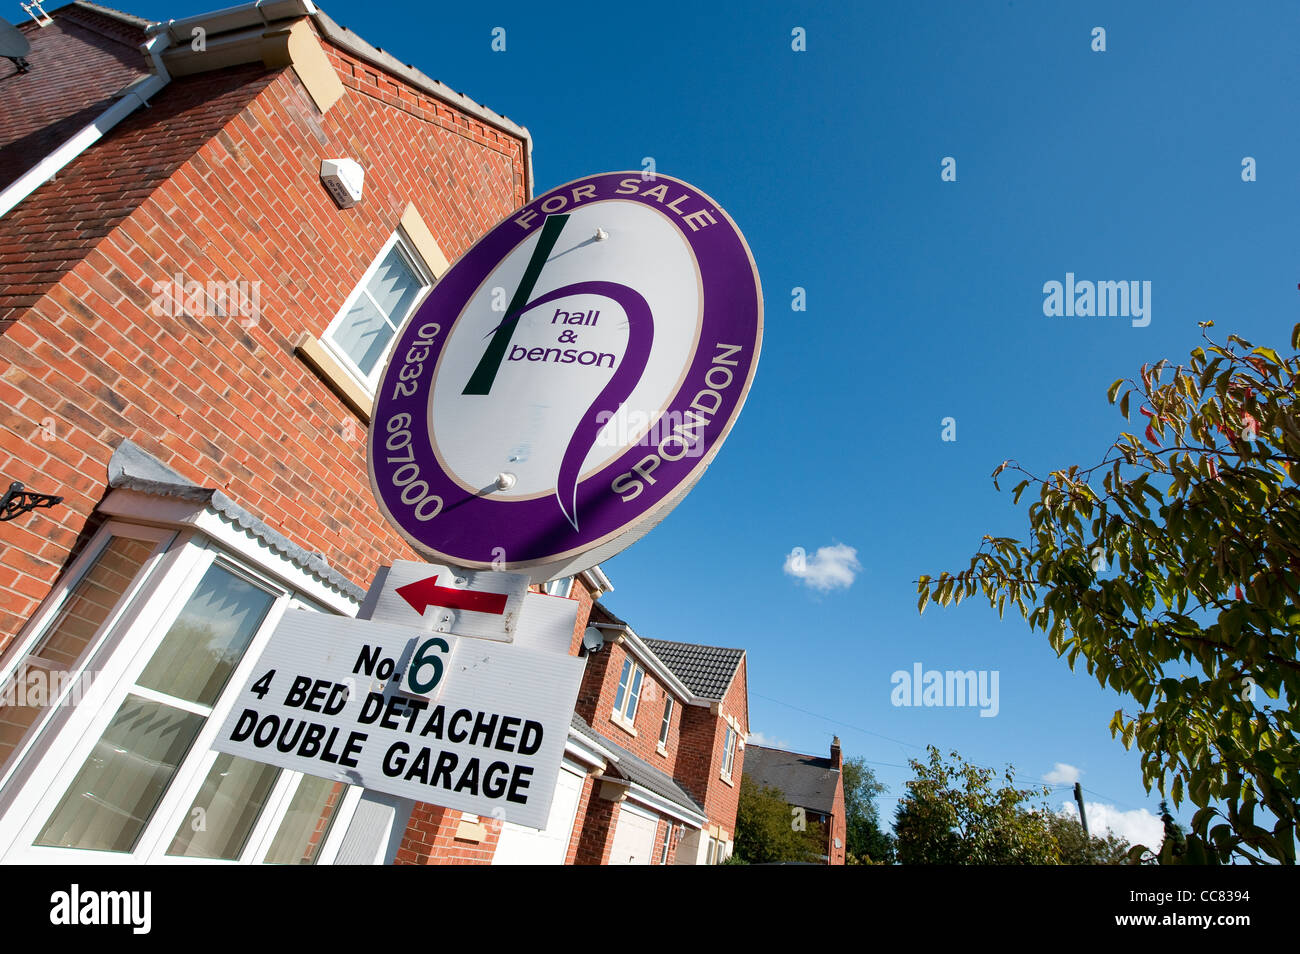 Estate agents for sale sign outside a house in England. - Stock Image